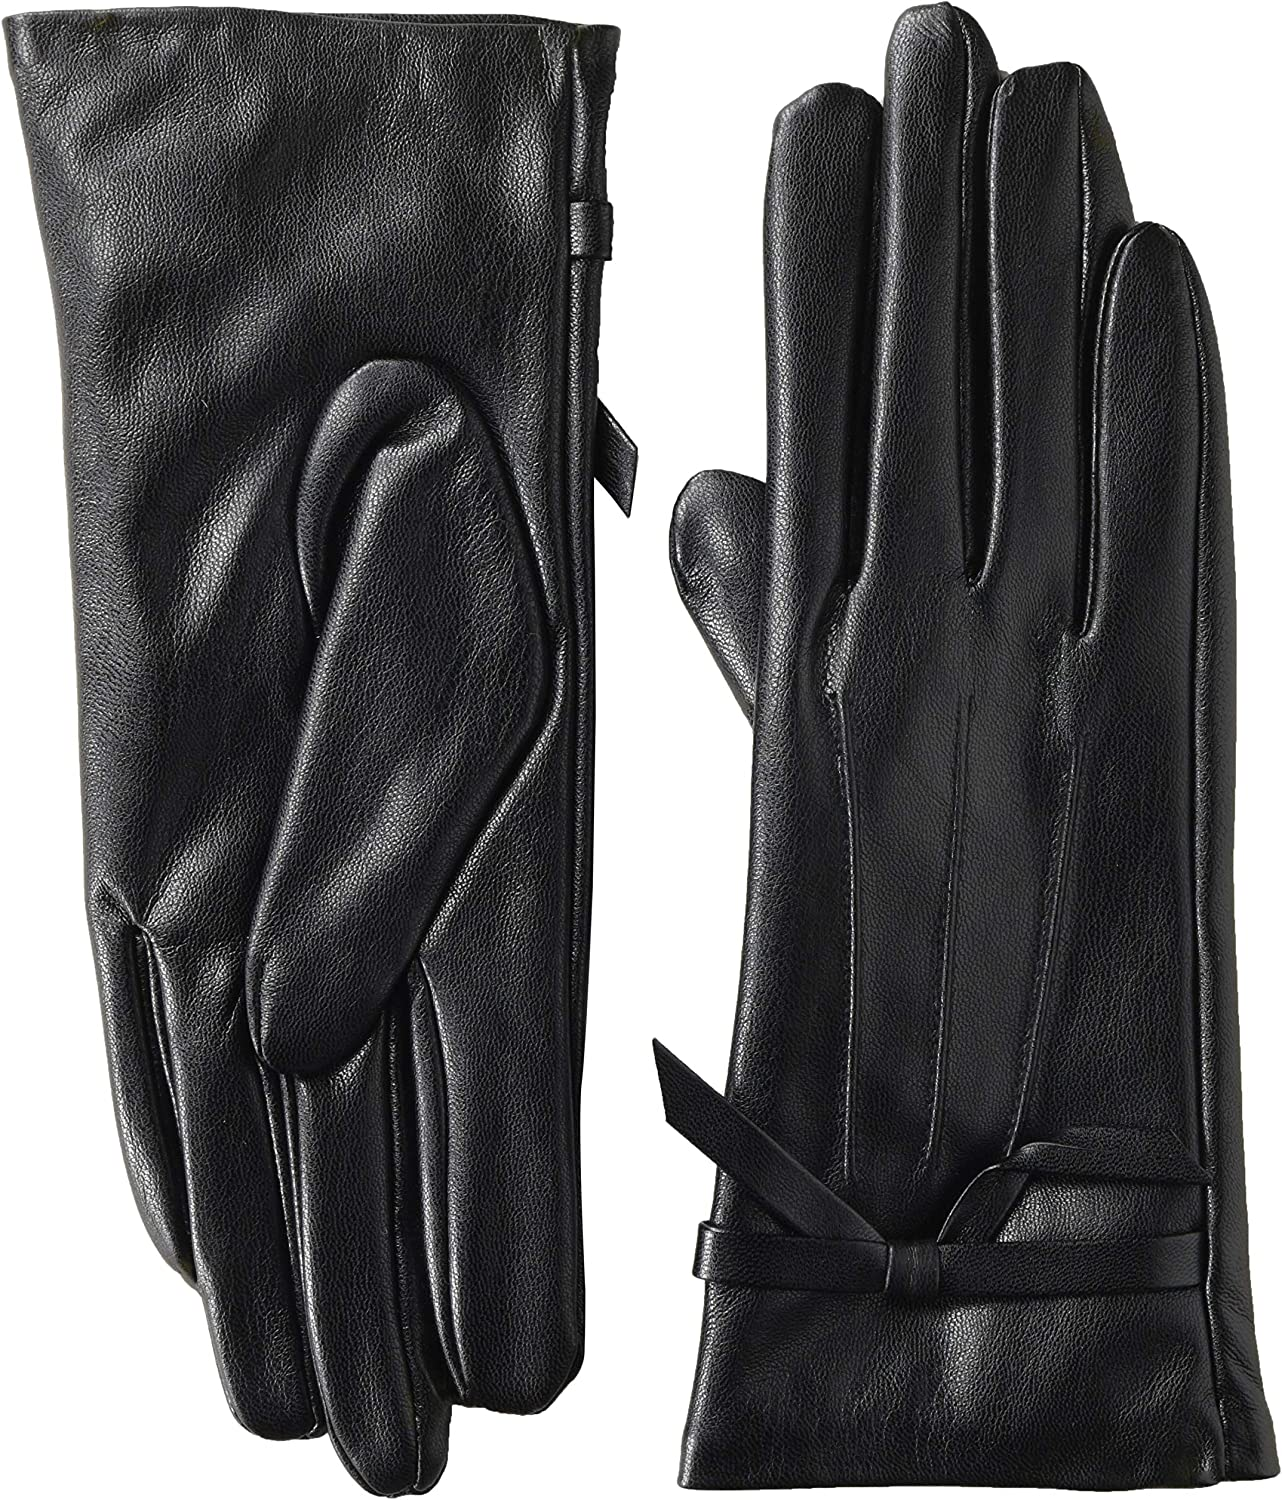 Mud Pie womens Faux Leather Driving Gloves